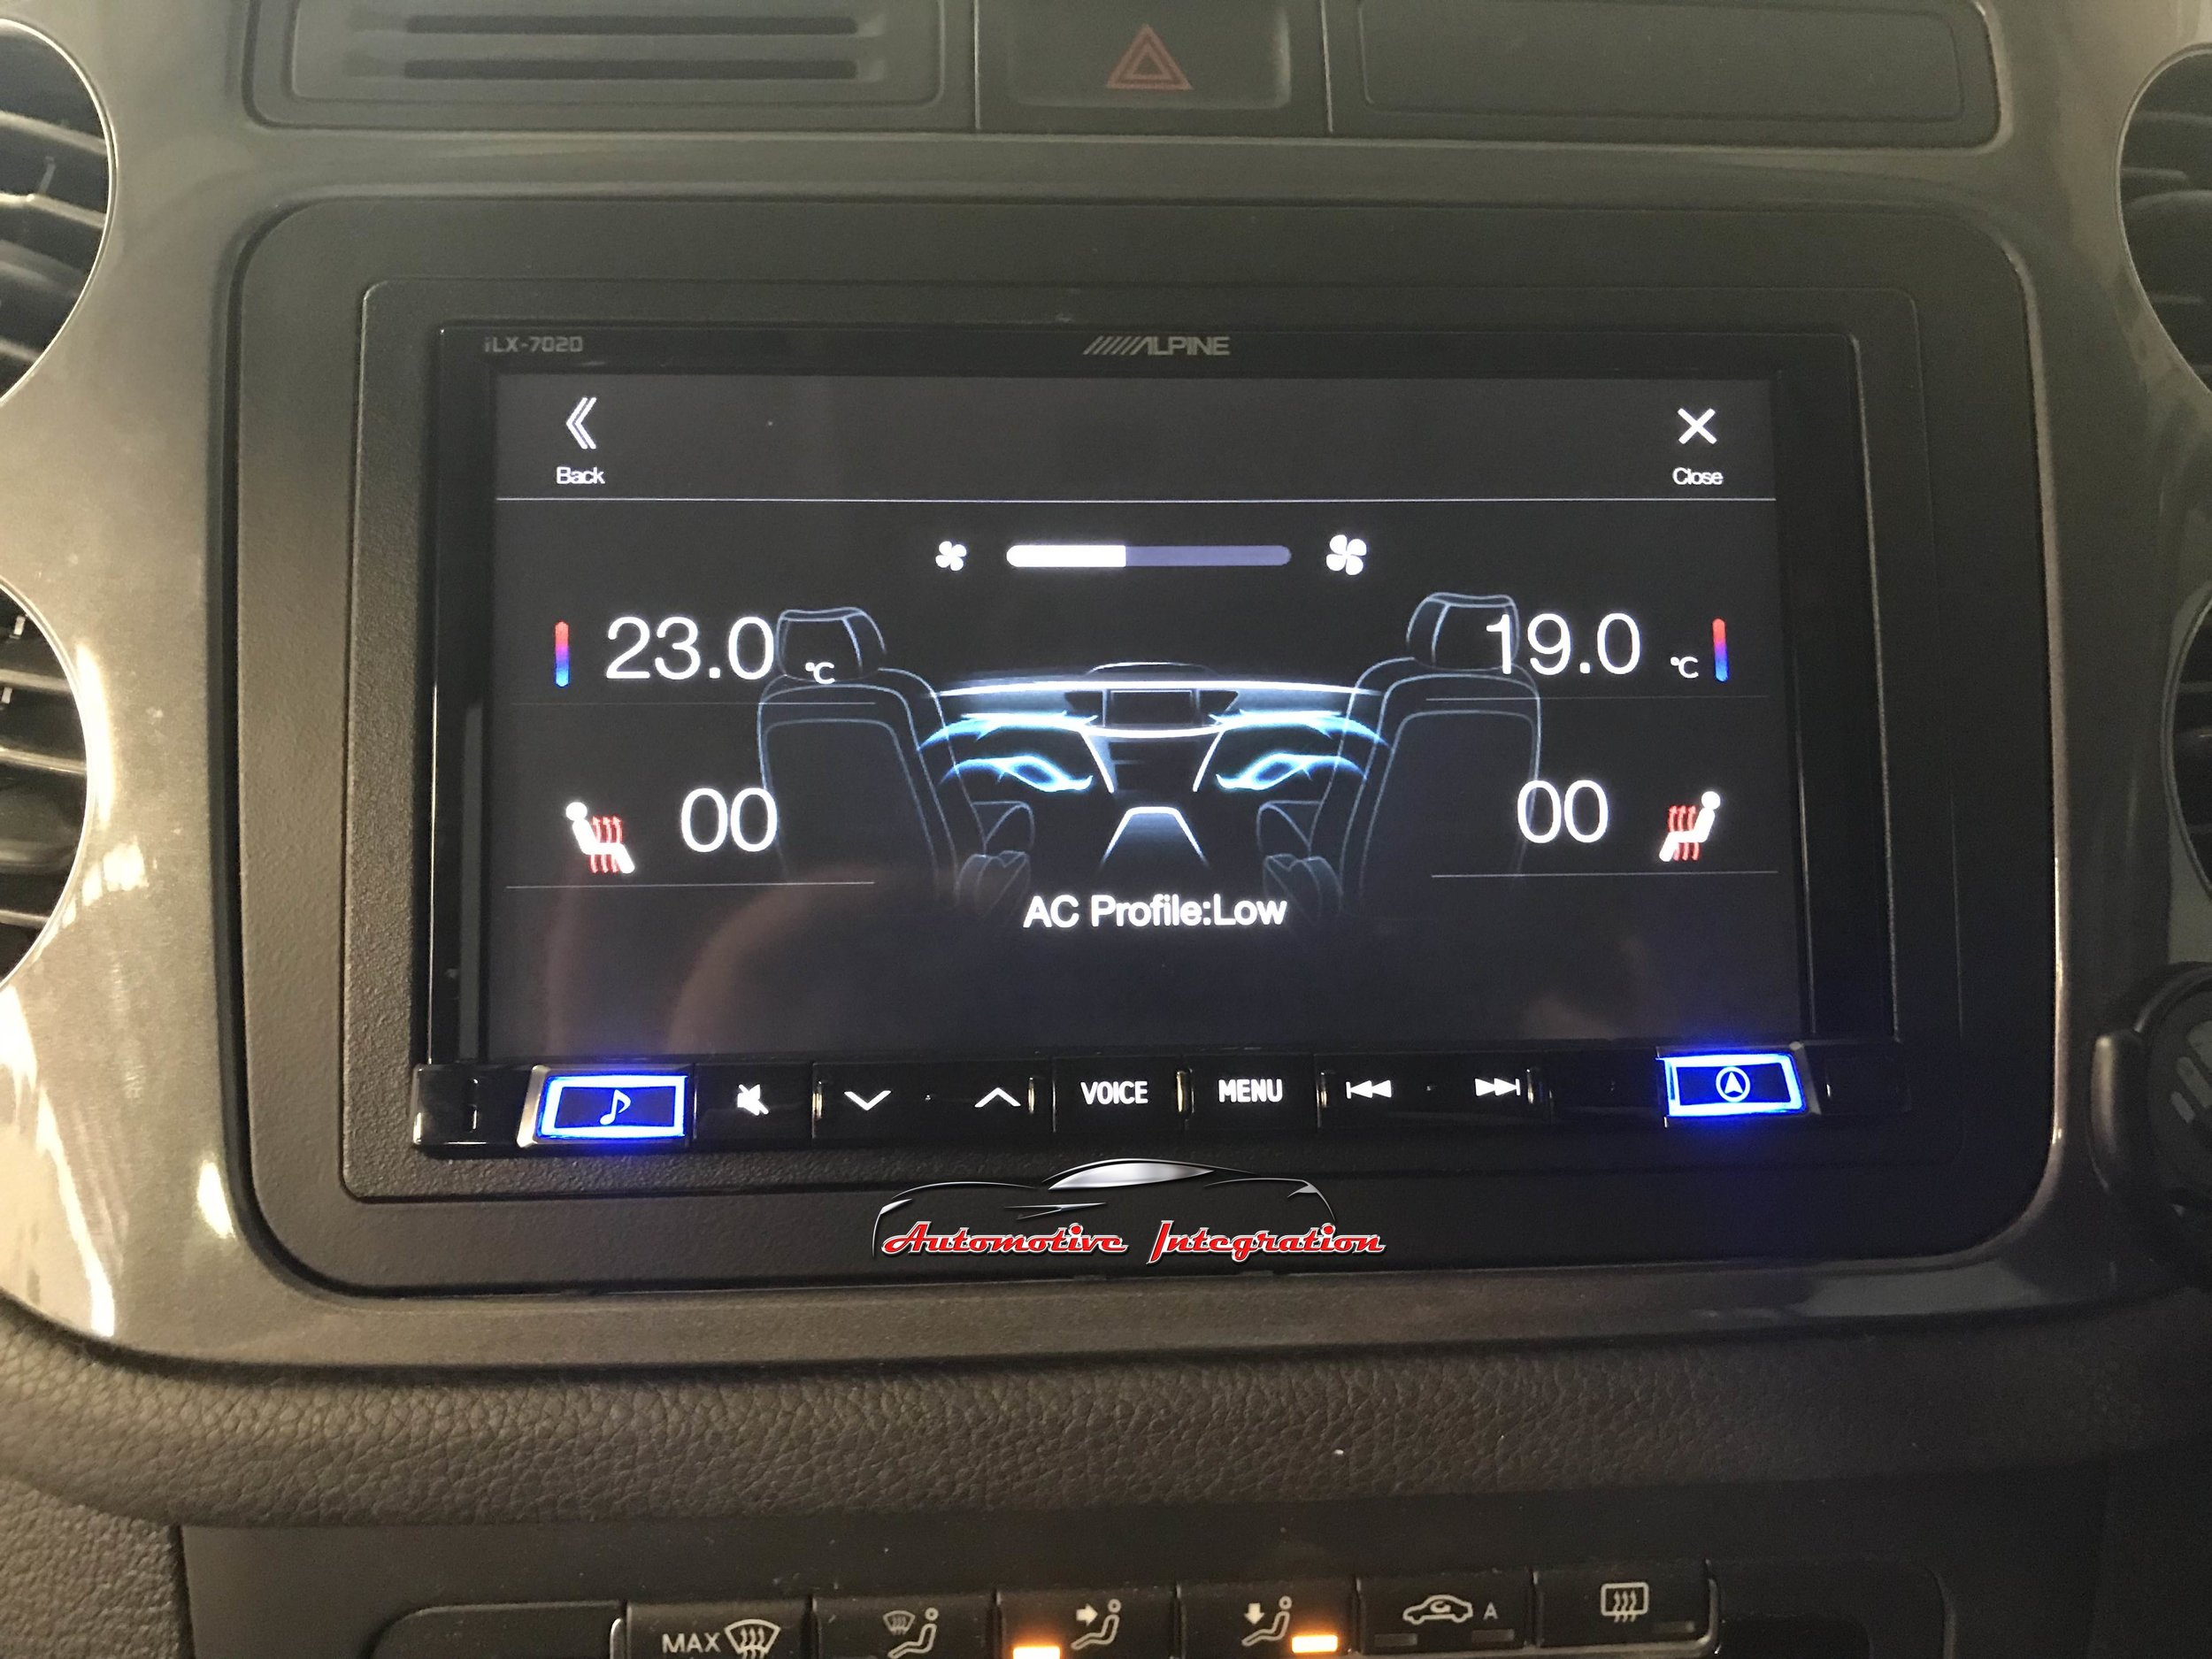 Factory Climate control displayed on the ILX-702D